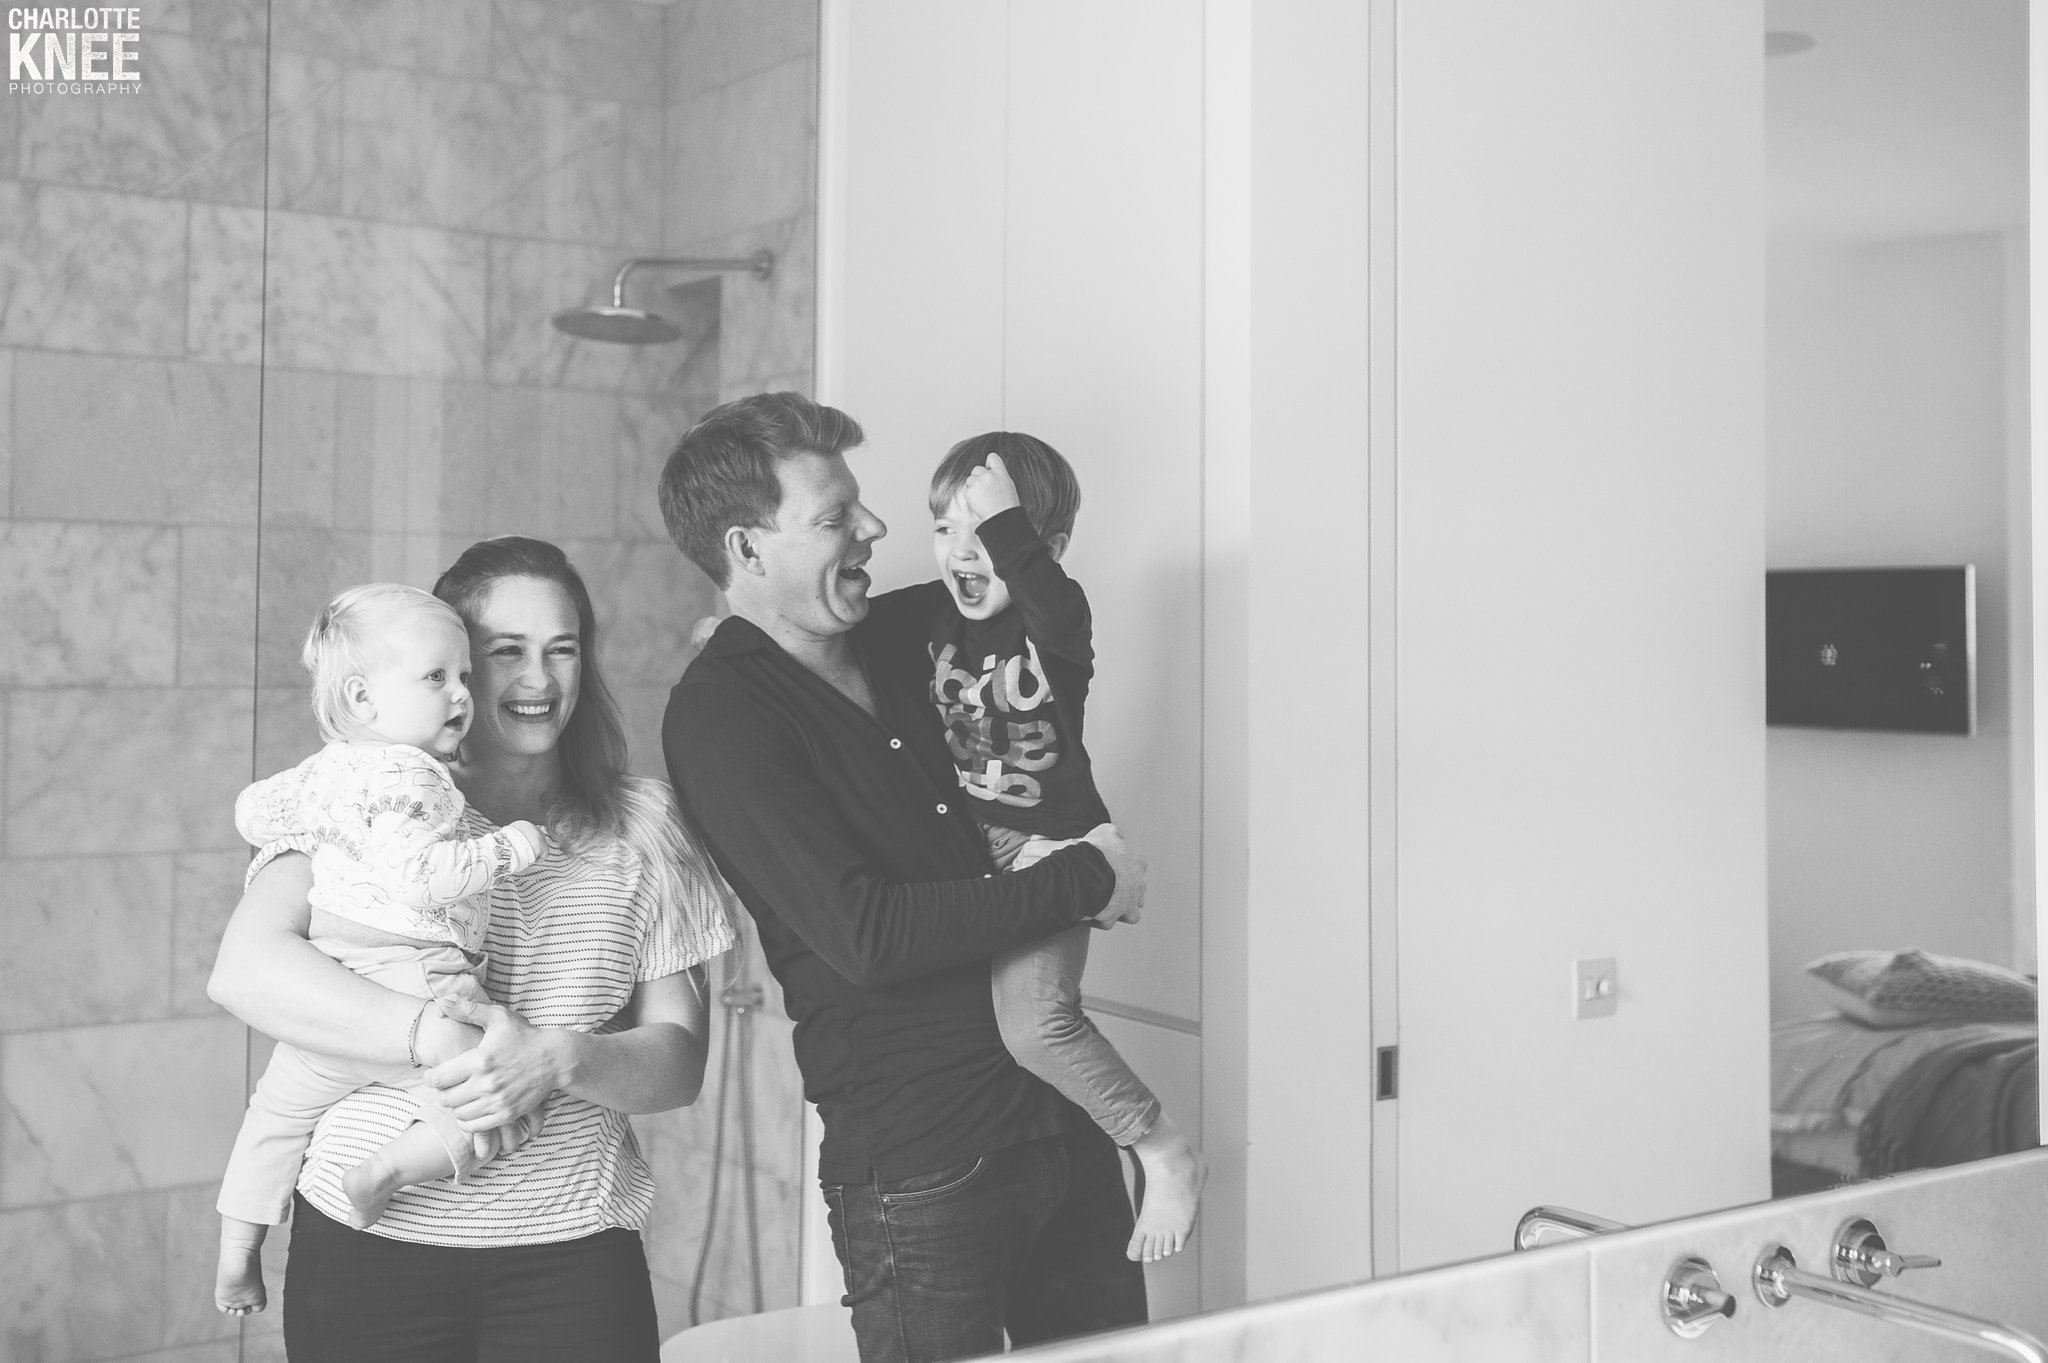 London Family Lifestyle Portrait Photography Copyright Charlotte Knee Photography_0065.jpg